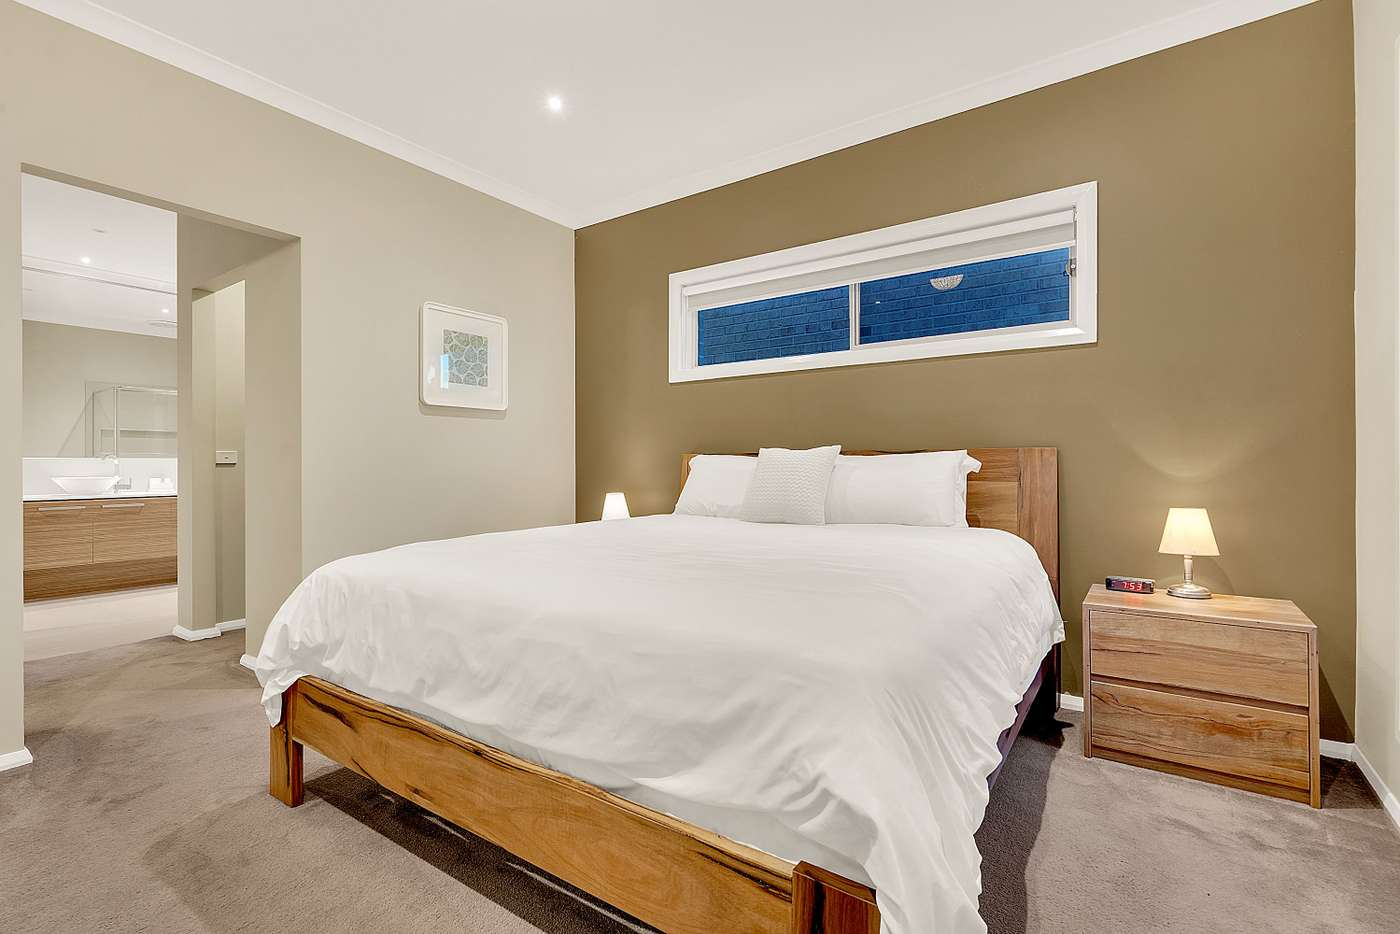 Sixth view of Homely house listing, 20 Penfold Street, Craigieburn VIC 3064